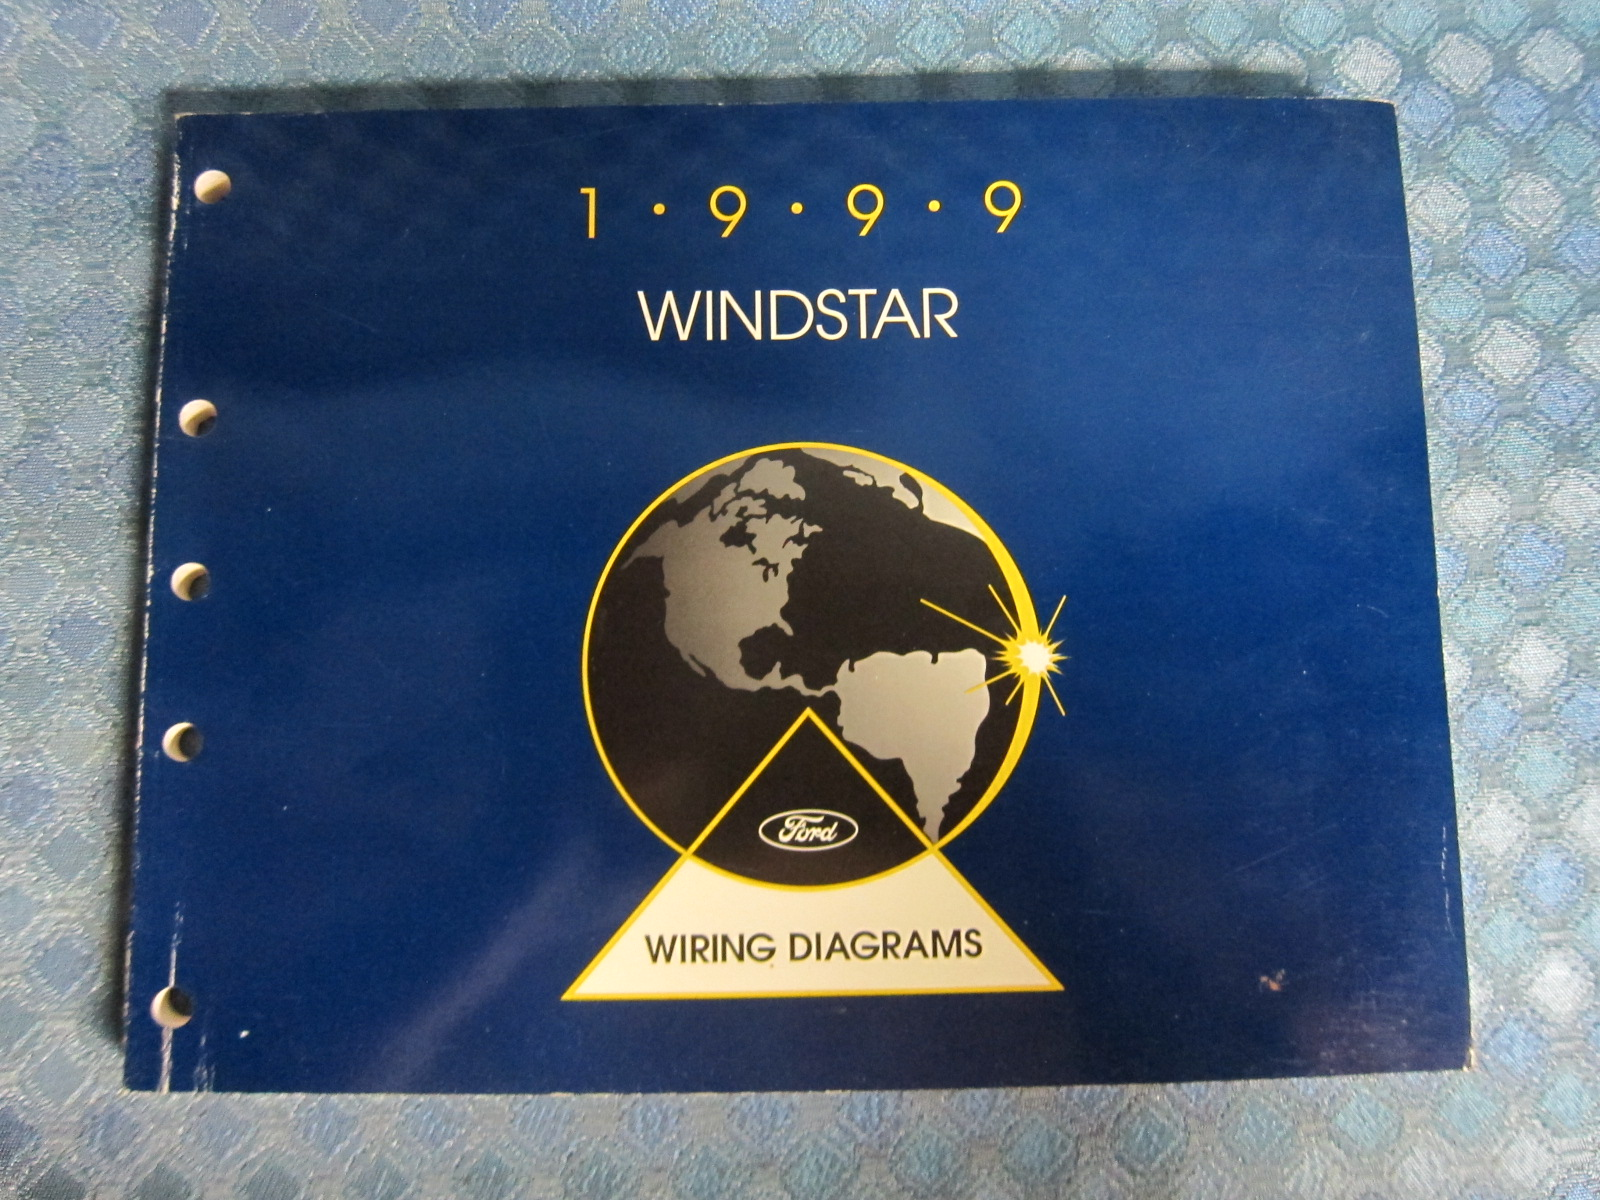 1999 Ford Windstar Original Oem Wiring Diagrams Manual